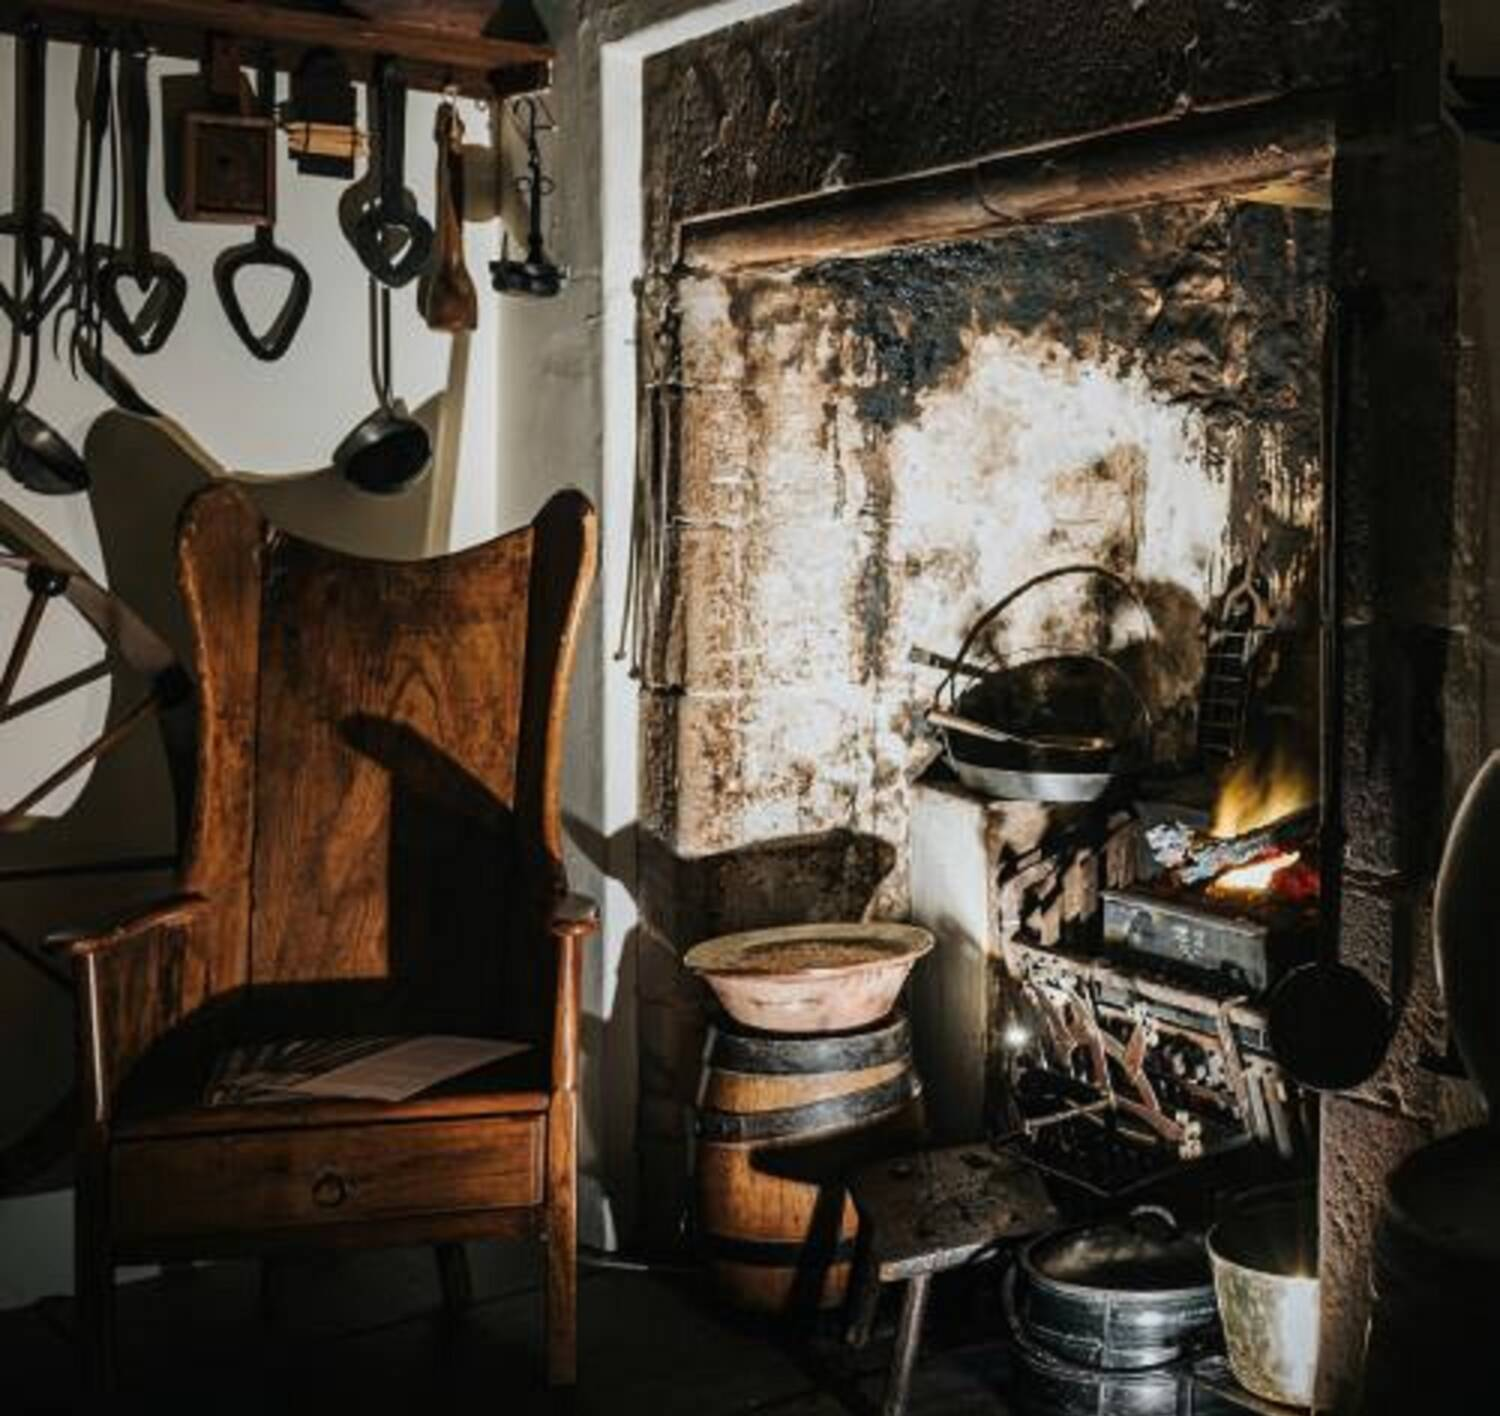 A photograph of a dark corner of an old kitchen. A wooden armchair sits beside a stone fireplace with various pots and pans beside it. Utensils hang on the wall behind the chair.